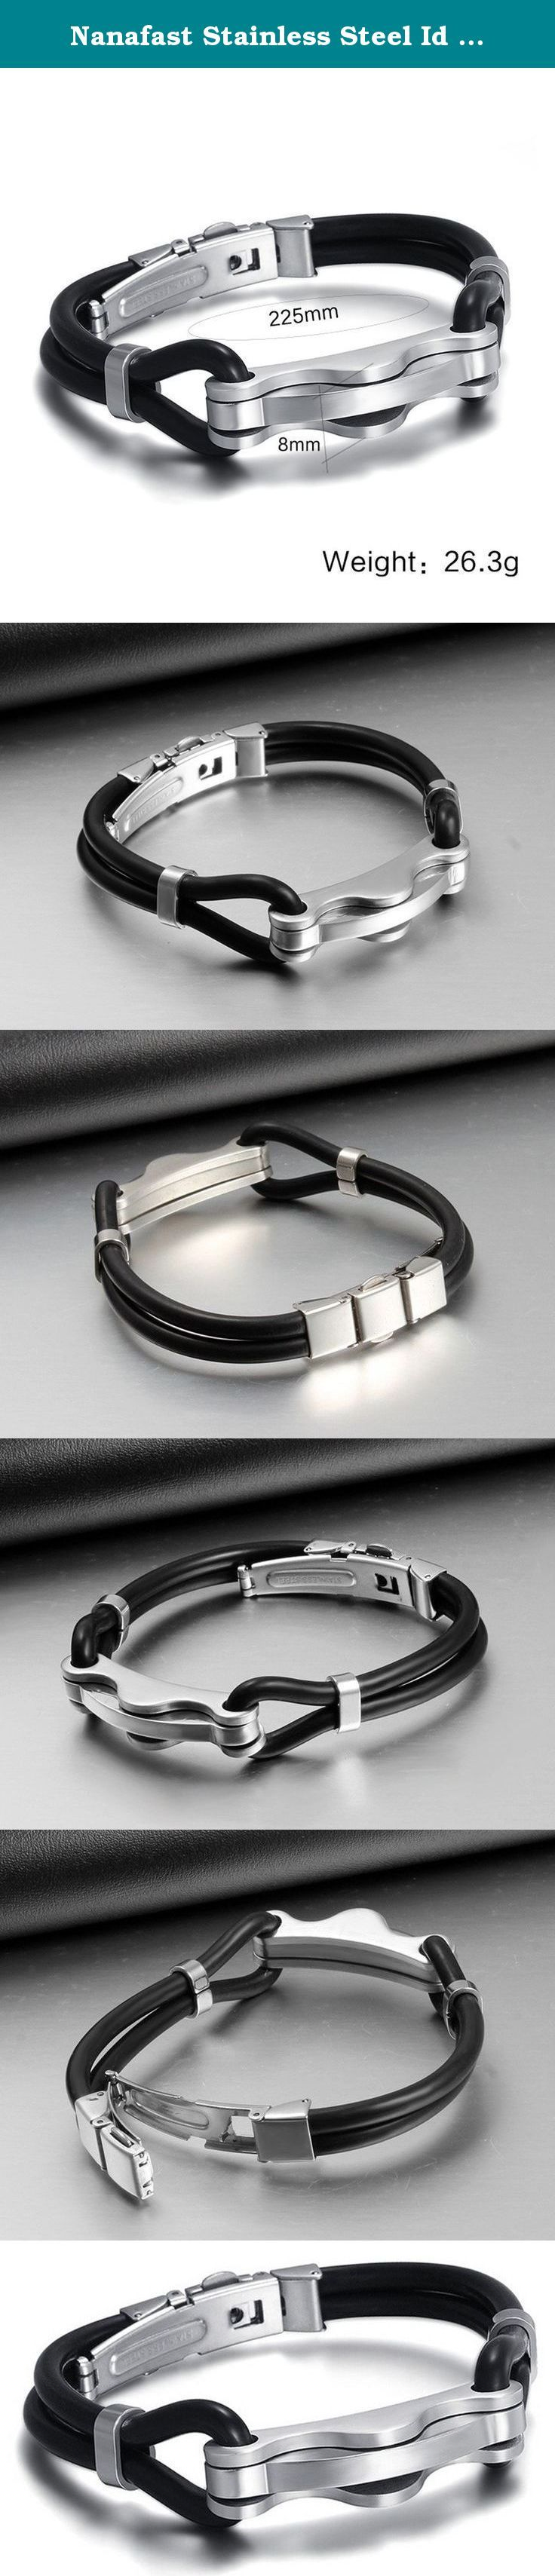 Nanafast Stainless Steel Id Bracelet for Men Simple Double Silicone Cord 2 Tones Wave Design. Stainless Steel Jewelry is the perfect gift for men. This bracelet is consist of allergy-free surgical stainless steel. Give it to your true gentleman, or treat yourself for a trendy bracelet style. Look and feel great with this designer bracelet! What is the Stainless Steel Jewelry? Stainless Steel is famous for its anti-acid, anti-alkali, anti-fade, anti-allergic and non-deforming. Because of...